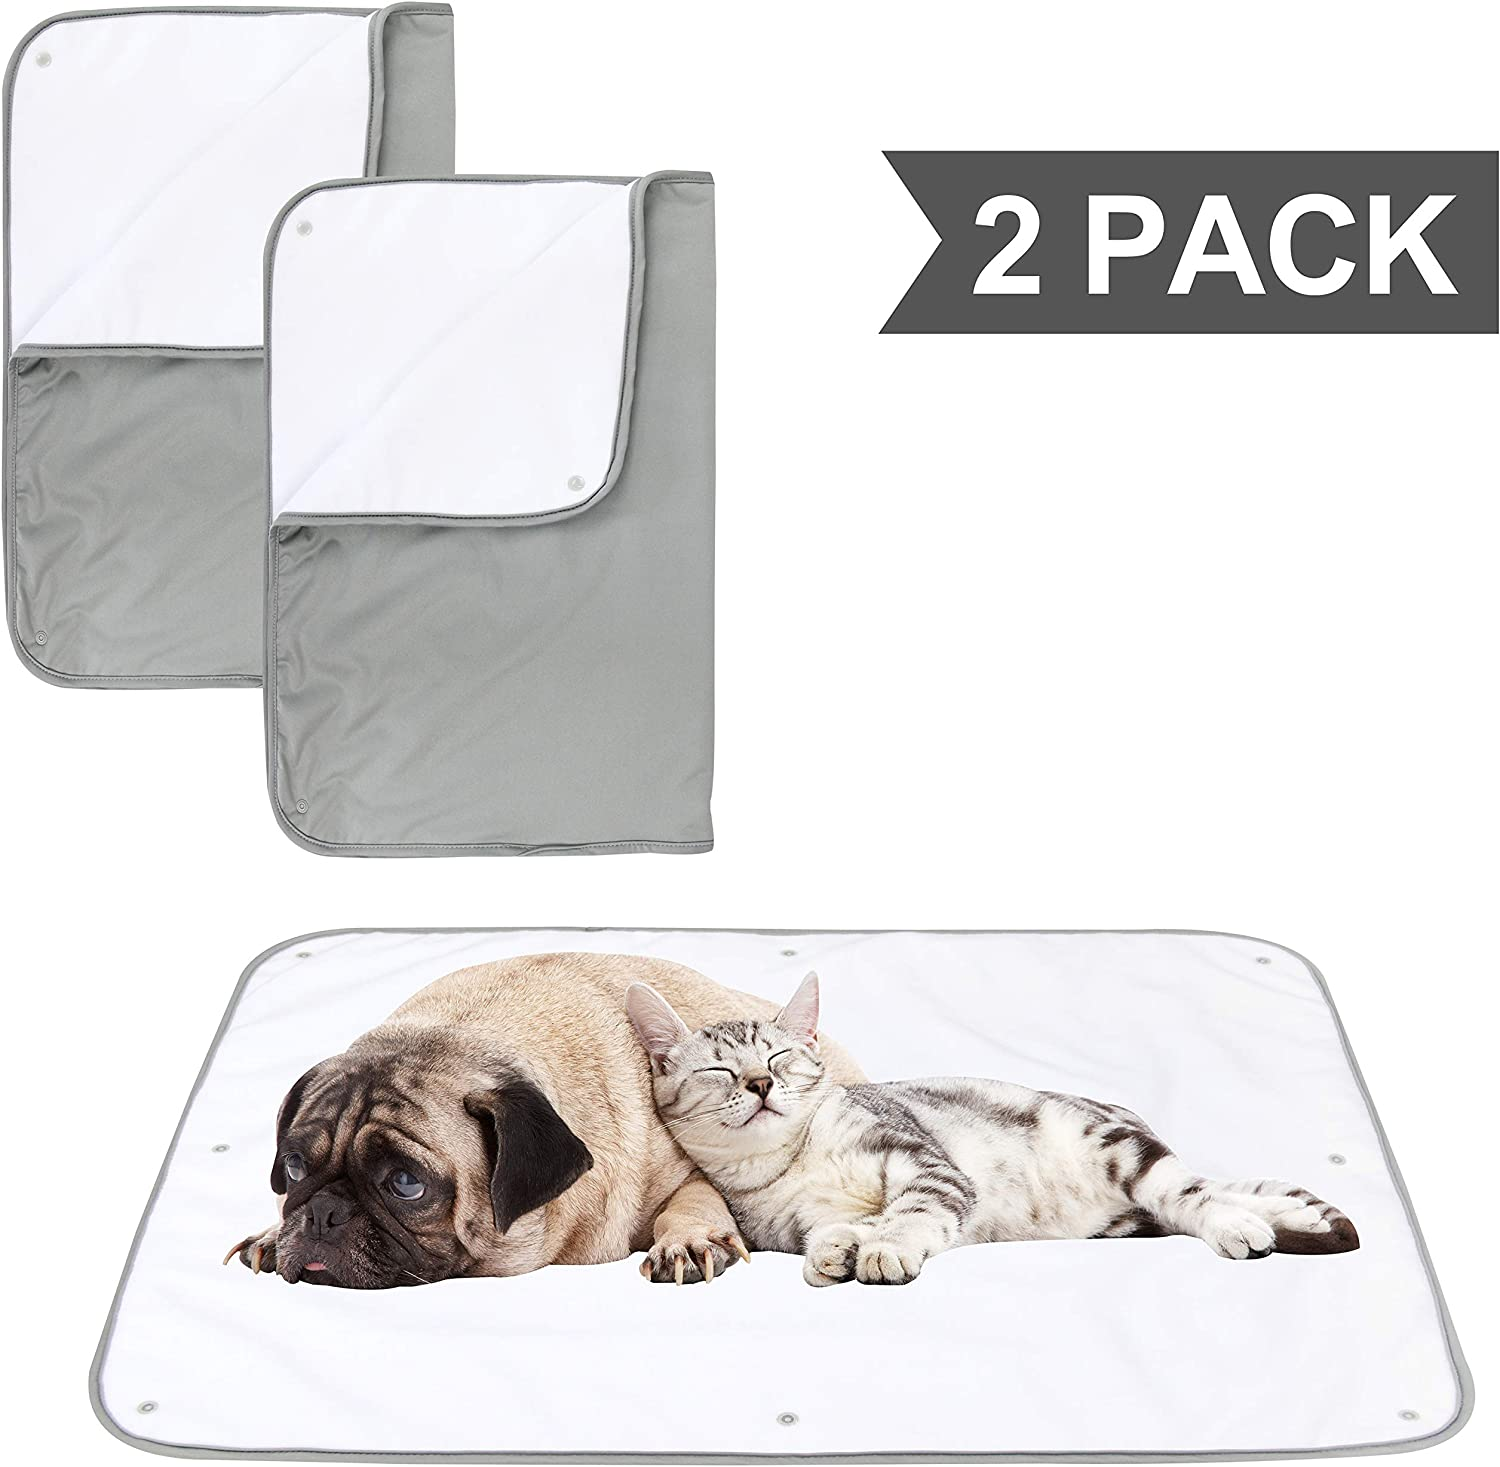 Paw Legend Multiple Sizes Waterproof Dog Blanket for Couches, Sofa, Bed and Car | Pet Fleece Incontinence Blanket Pad for Dogs, Puppies, Cats and Kids (Grey Color) : Pet Supplies